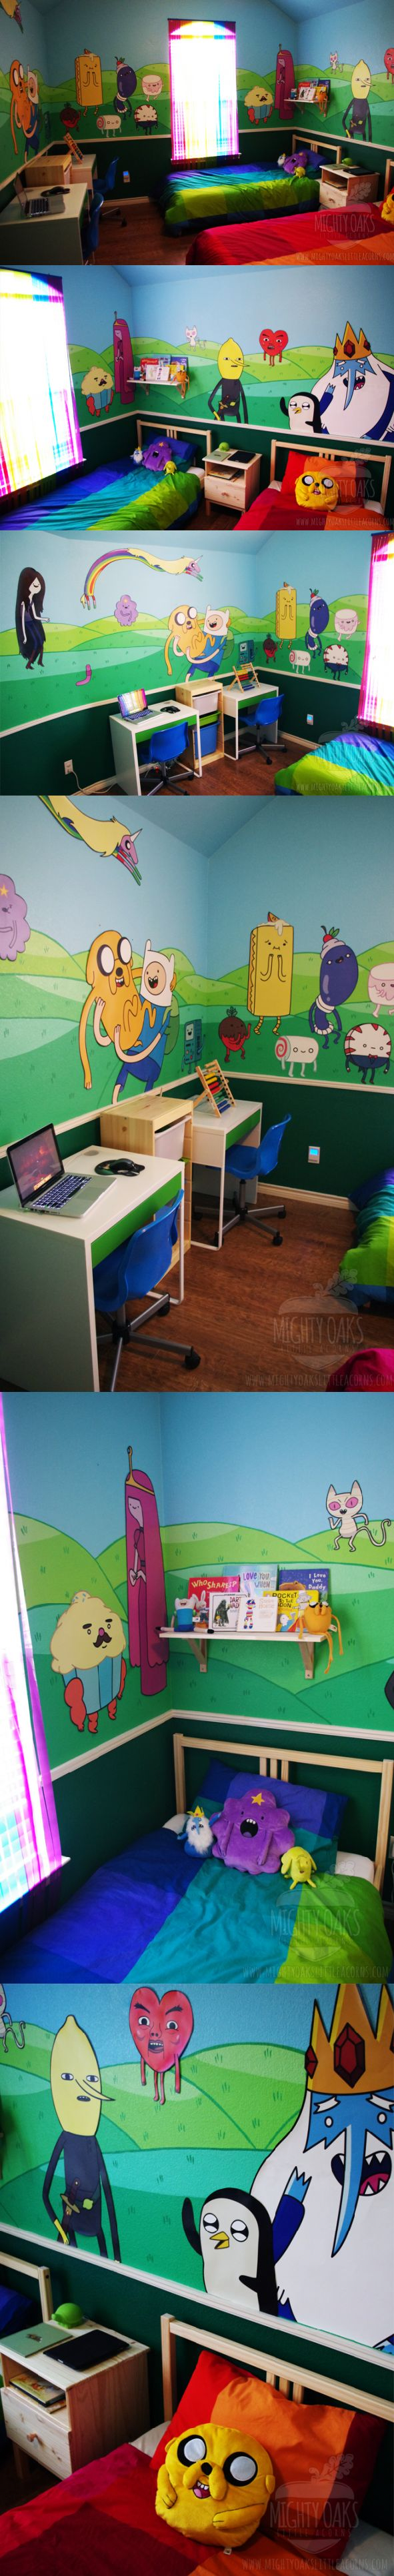 What time is it? Adventure time!!!!! Yay!!!!!!!!!This  is literally so cool and I want to paint my walls like that someday!!!!!!